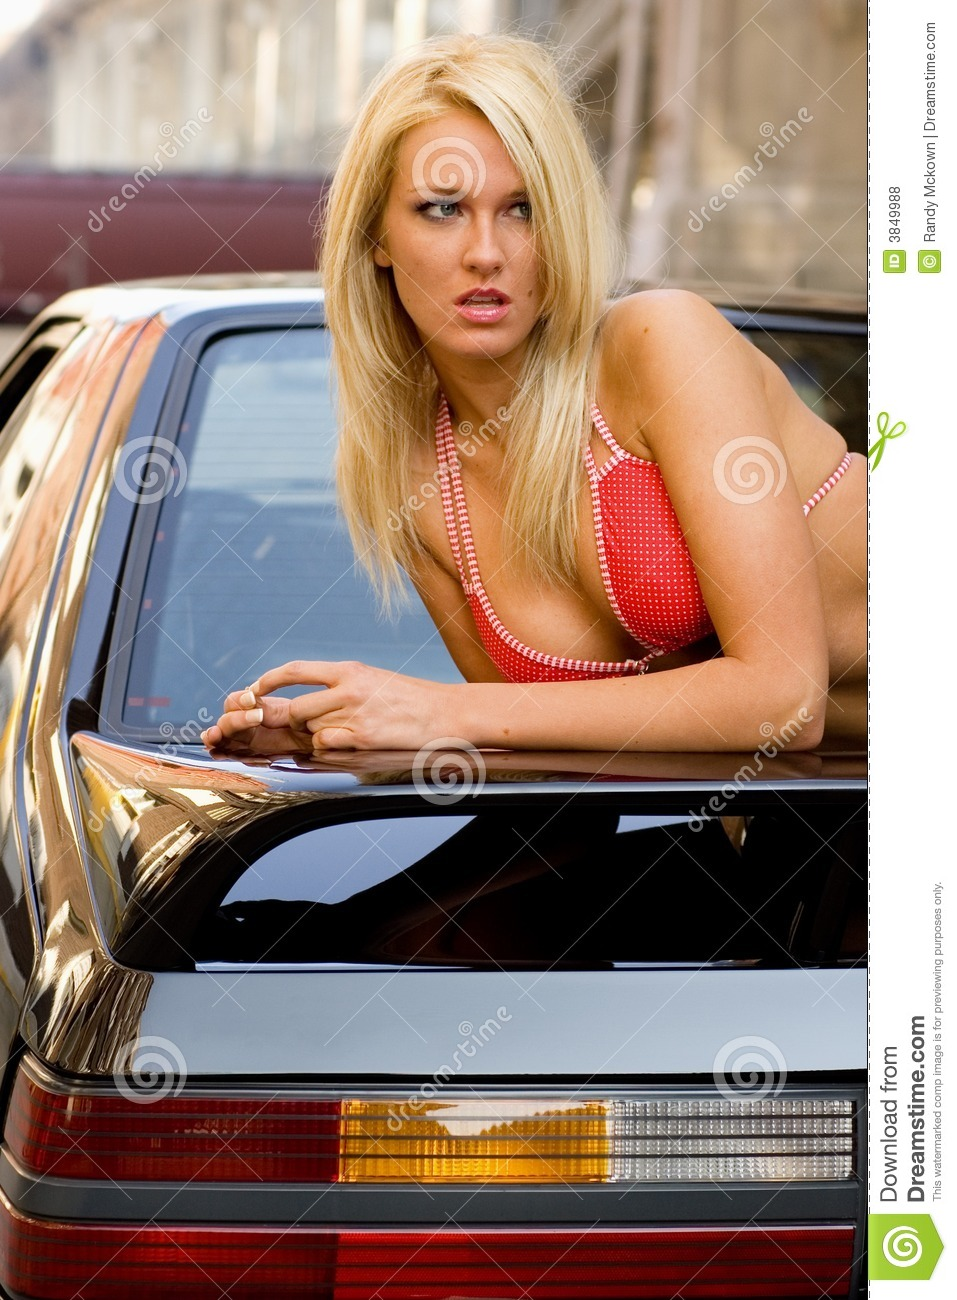 Sexy blonde fashion model in a swim suit laying on a black sports car